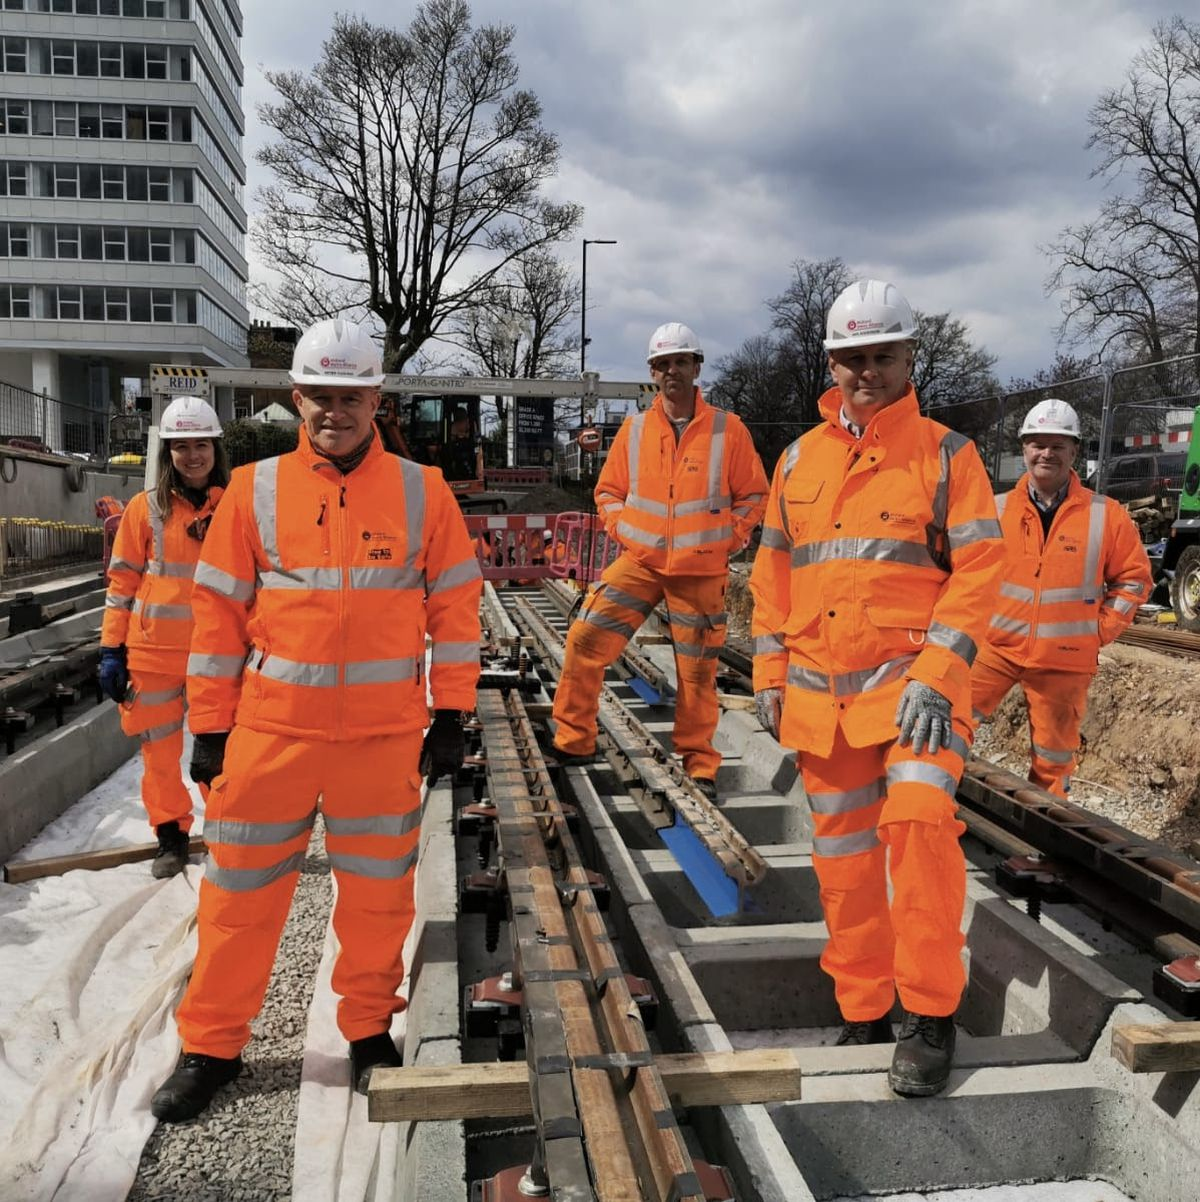 Clockwise from front left, Peter Cushing, director of the Midland Metro Alliance; Marta Gasch, lead track engineer; Martin Ponter, delivery manager; Stephen Christopher, deputy construction director and Iain Anderson, managing director of Colas Rail Urban & Industries